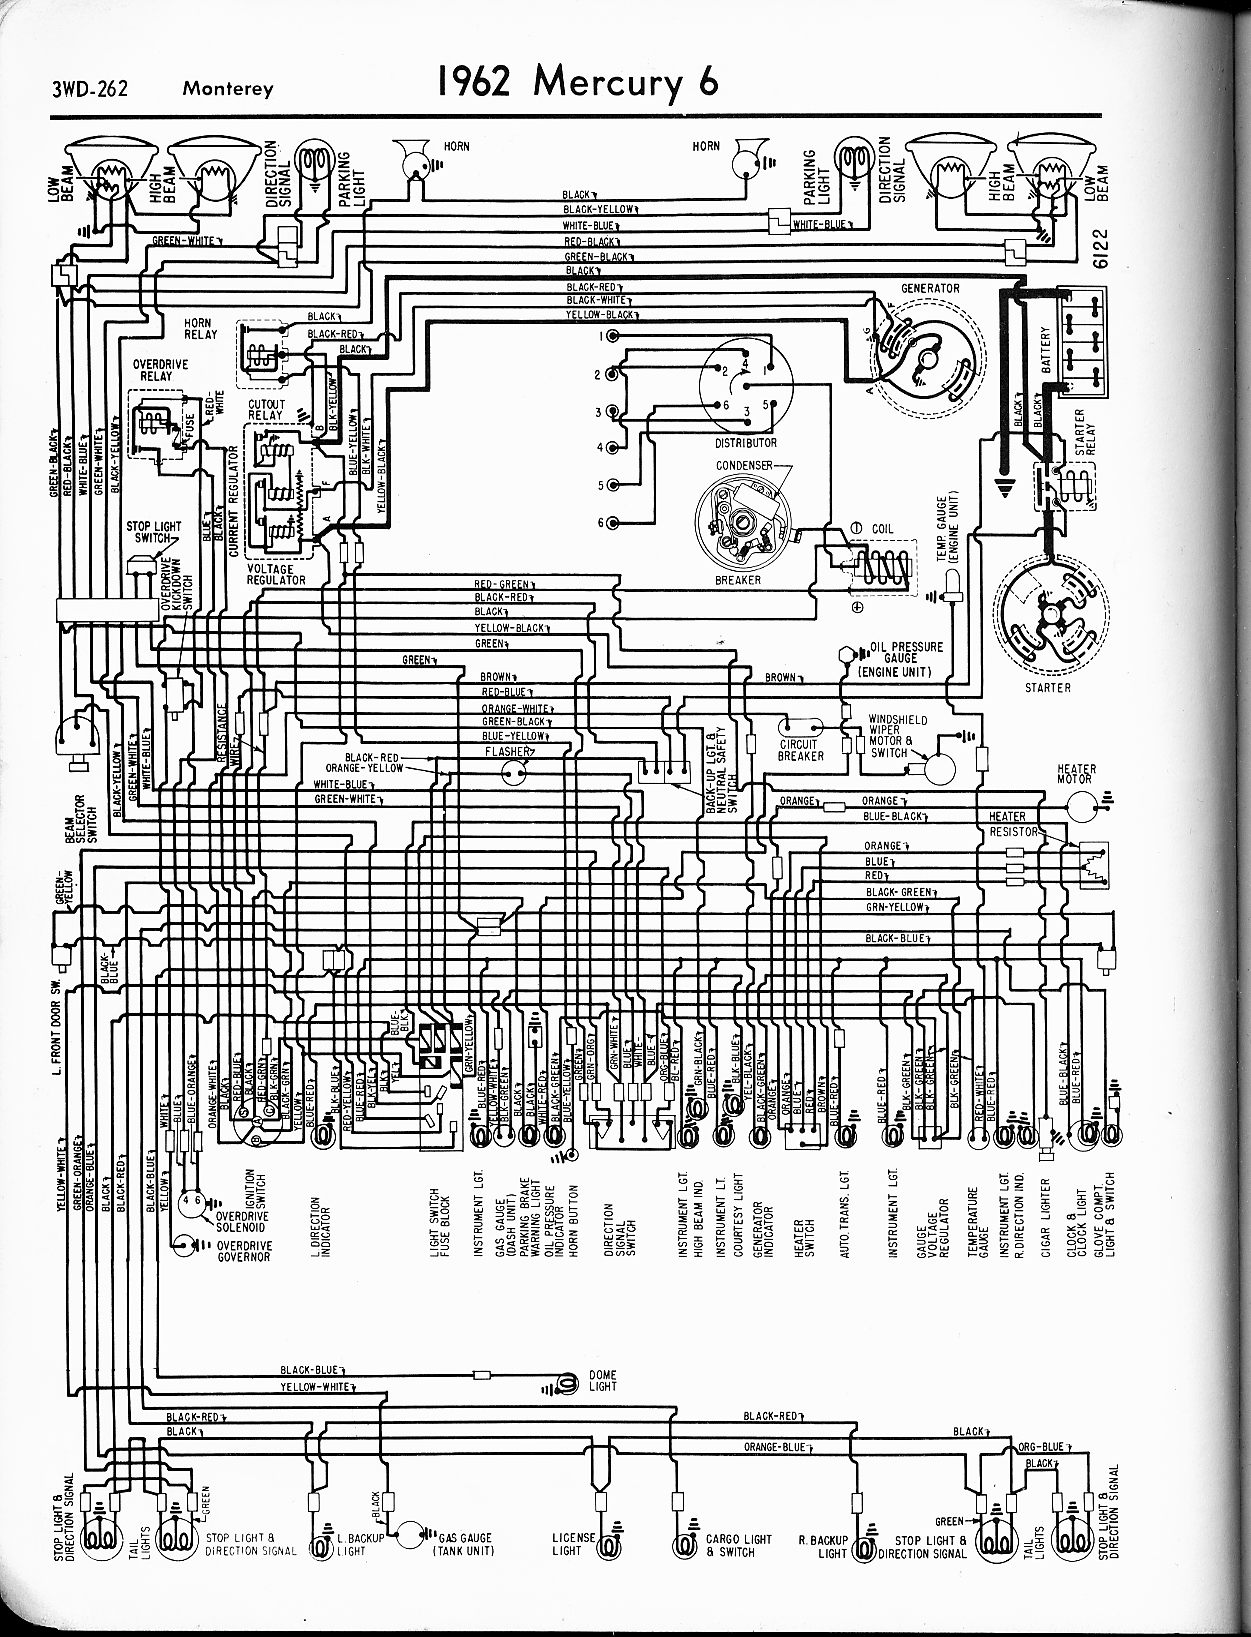 1968 Mustang Wiring Diagram Convert Ble Worksheet And Heater Mercury Diagrams The Old Car Manual Project Rh Oldcarmanualproject Com Motor